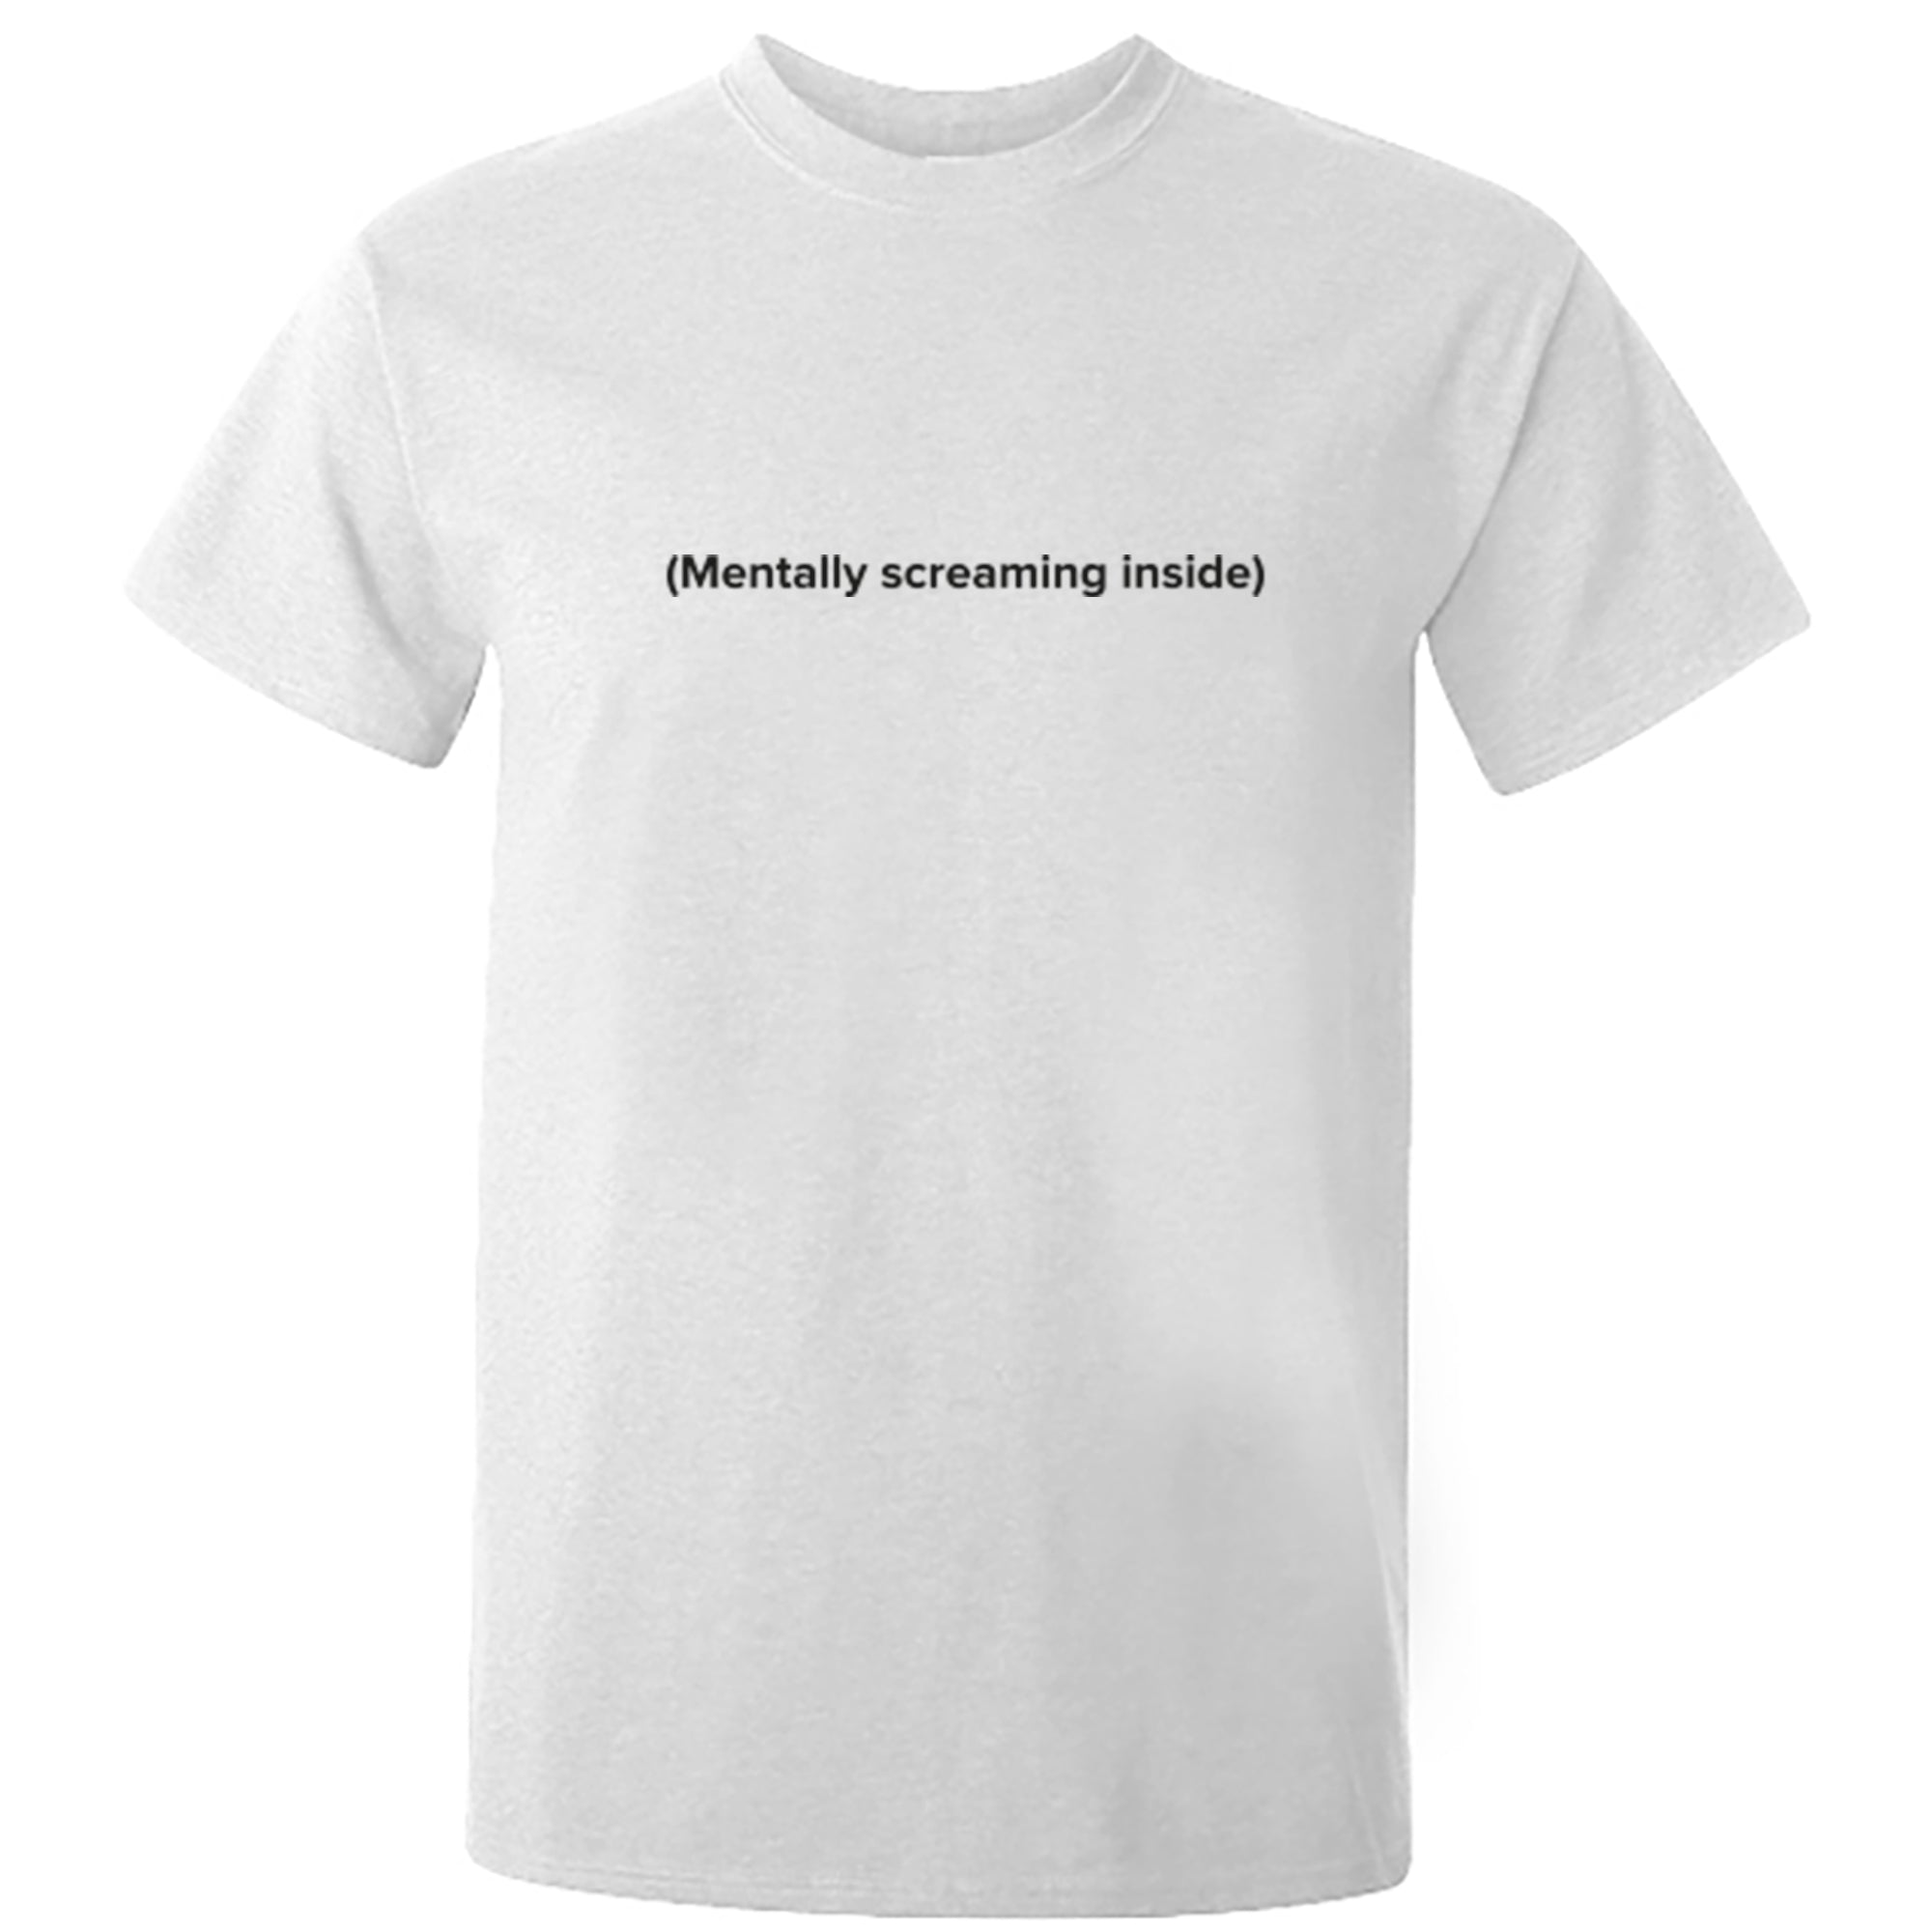 (Mentally Screaming Inside) Unisex Fit T-Shirt S1144 - Illustrated Identity Ltd.